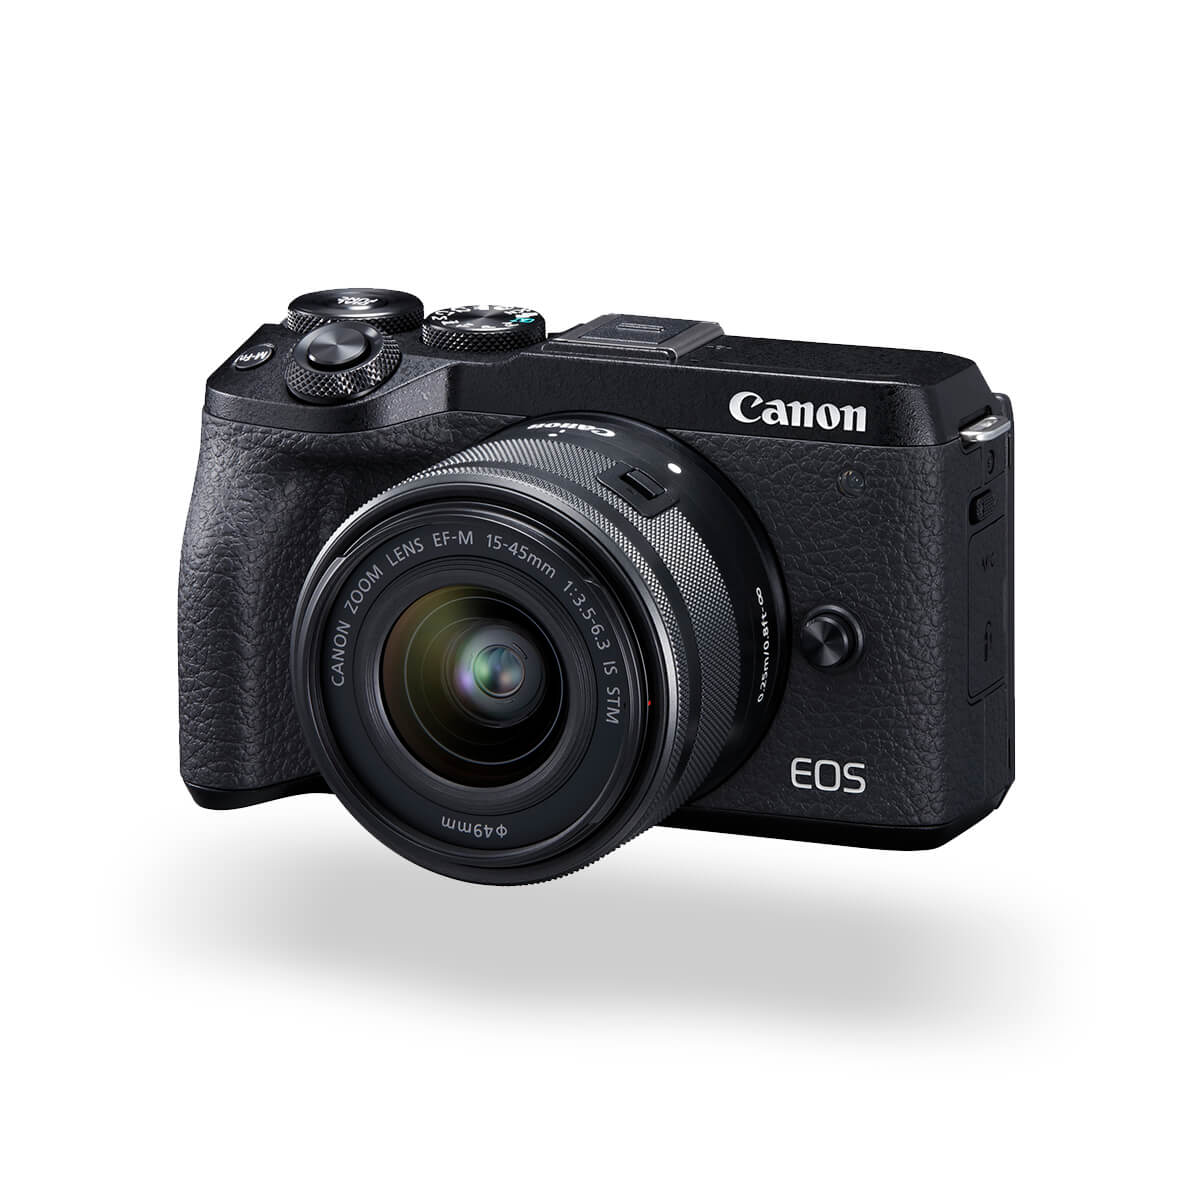 EOS M6 Mark II slanted left